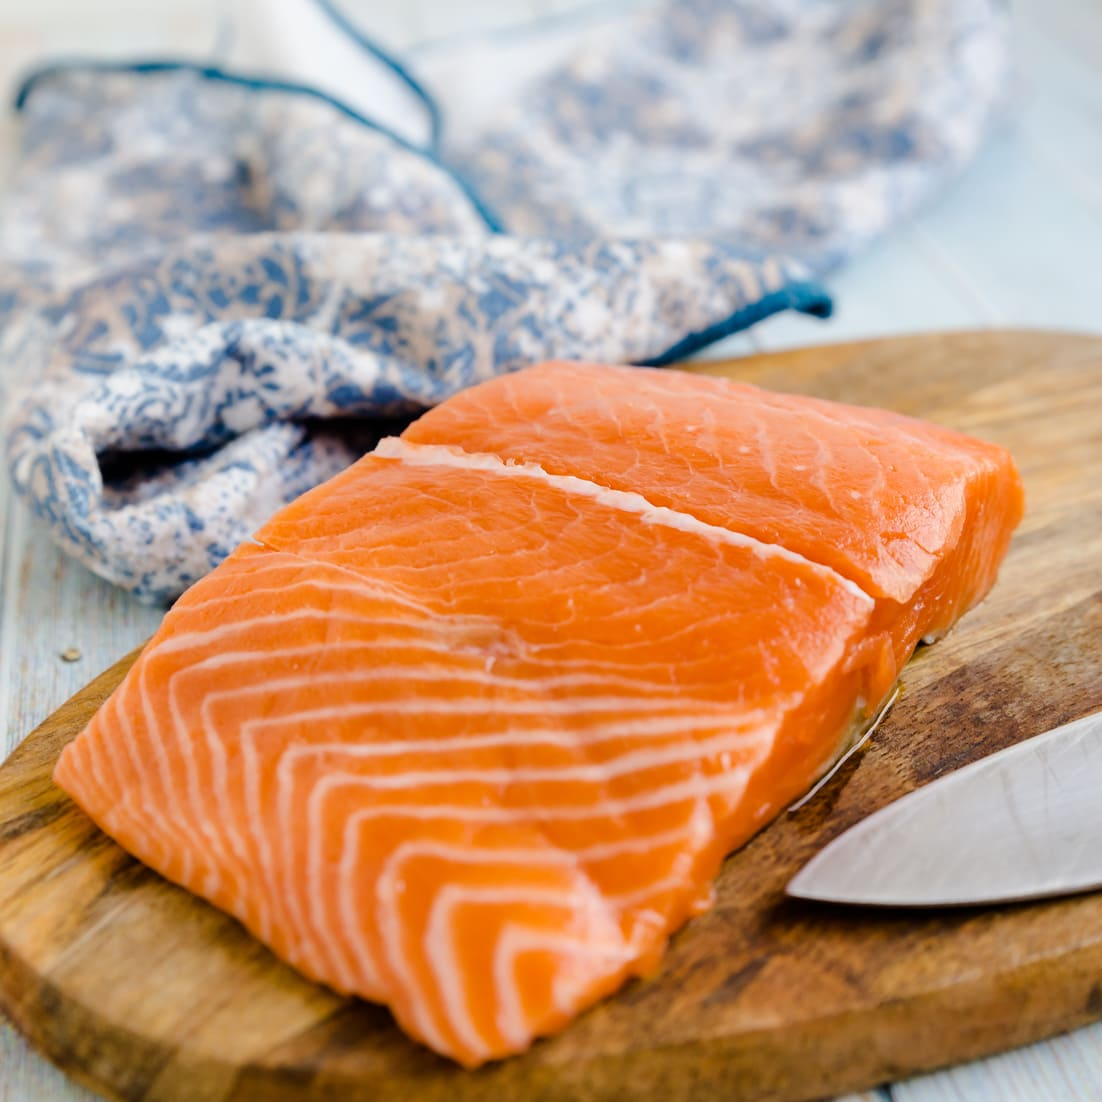 Skinless salmon fillet on a wooden cutting board